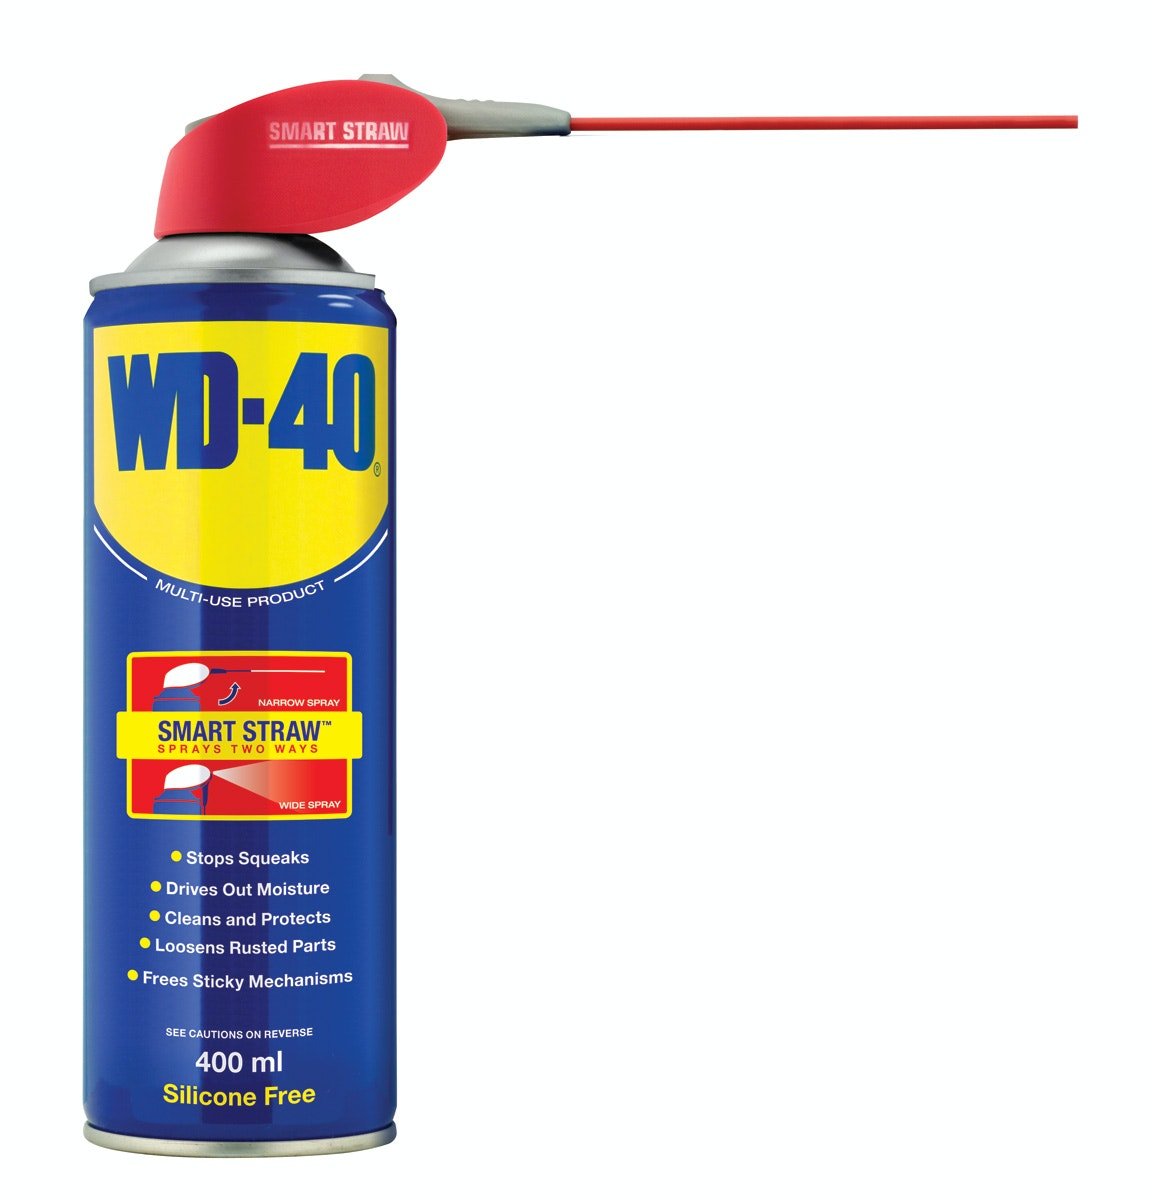 WD-40 specialist kit sweepstakes